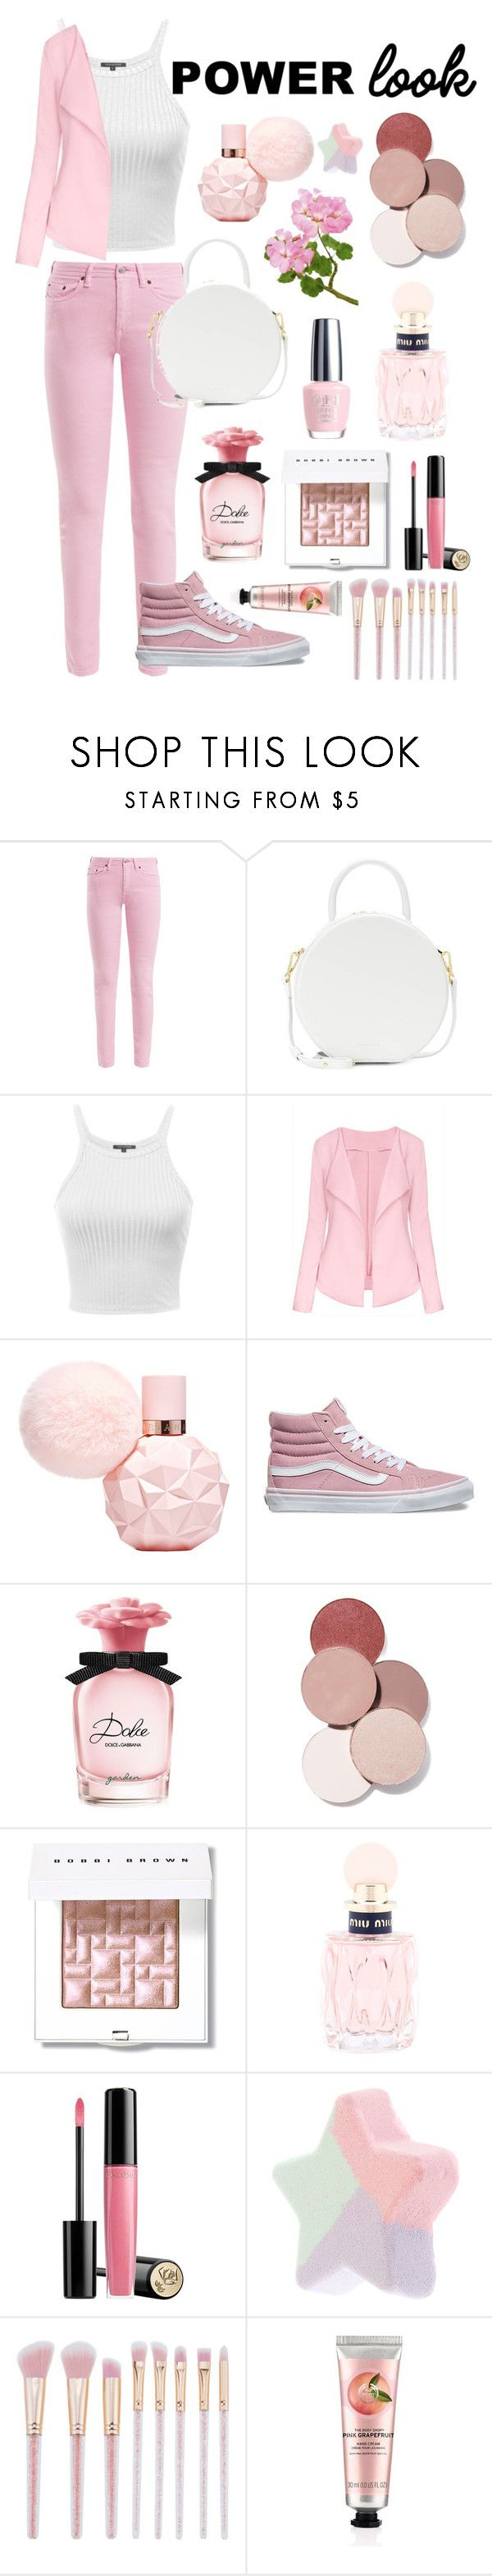 """""""All about pale pink"""" by pugicorns ❤ liked on Polyvore featuring Acne Studios, Mansur Gavriel, WithChic, Vans, Dolce&Gabbana, OPI, LunatiCK Cosmetic Labs, Bobbi Brown Cosmetics, Miu Miu and Lancôme"""